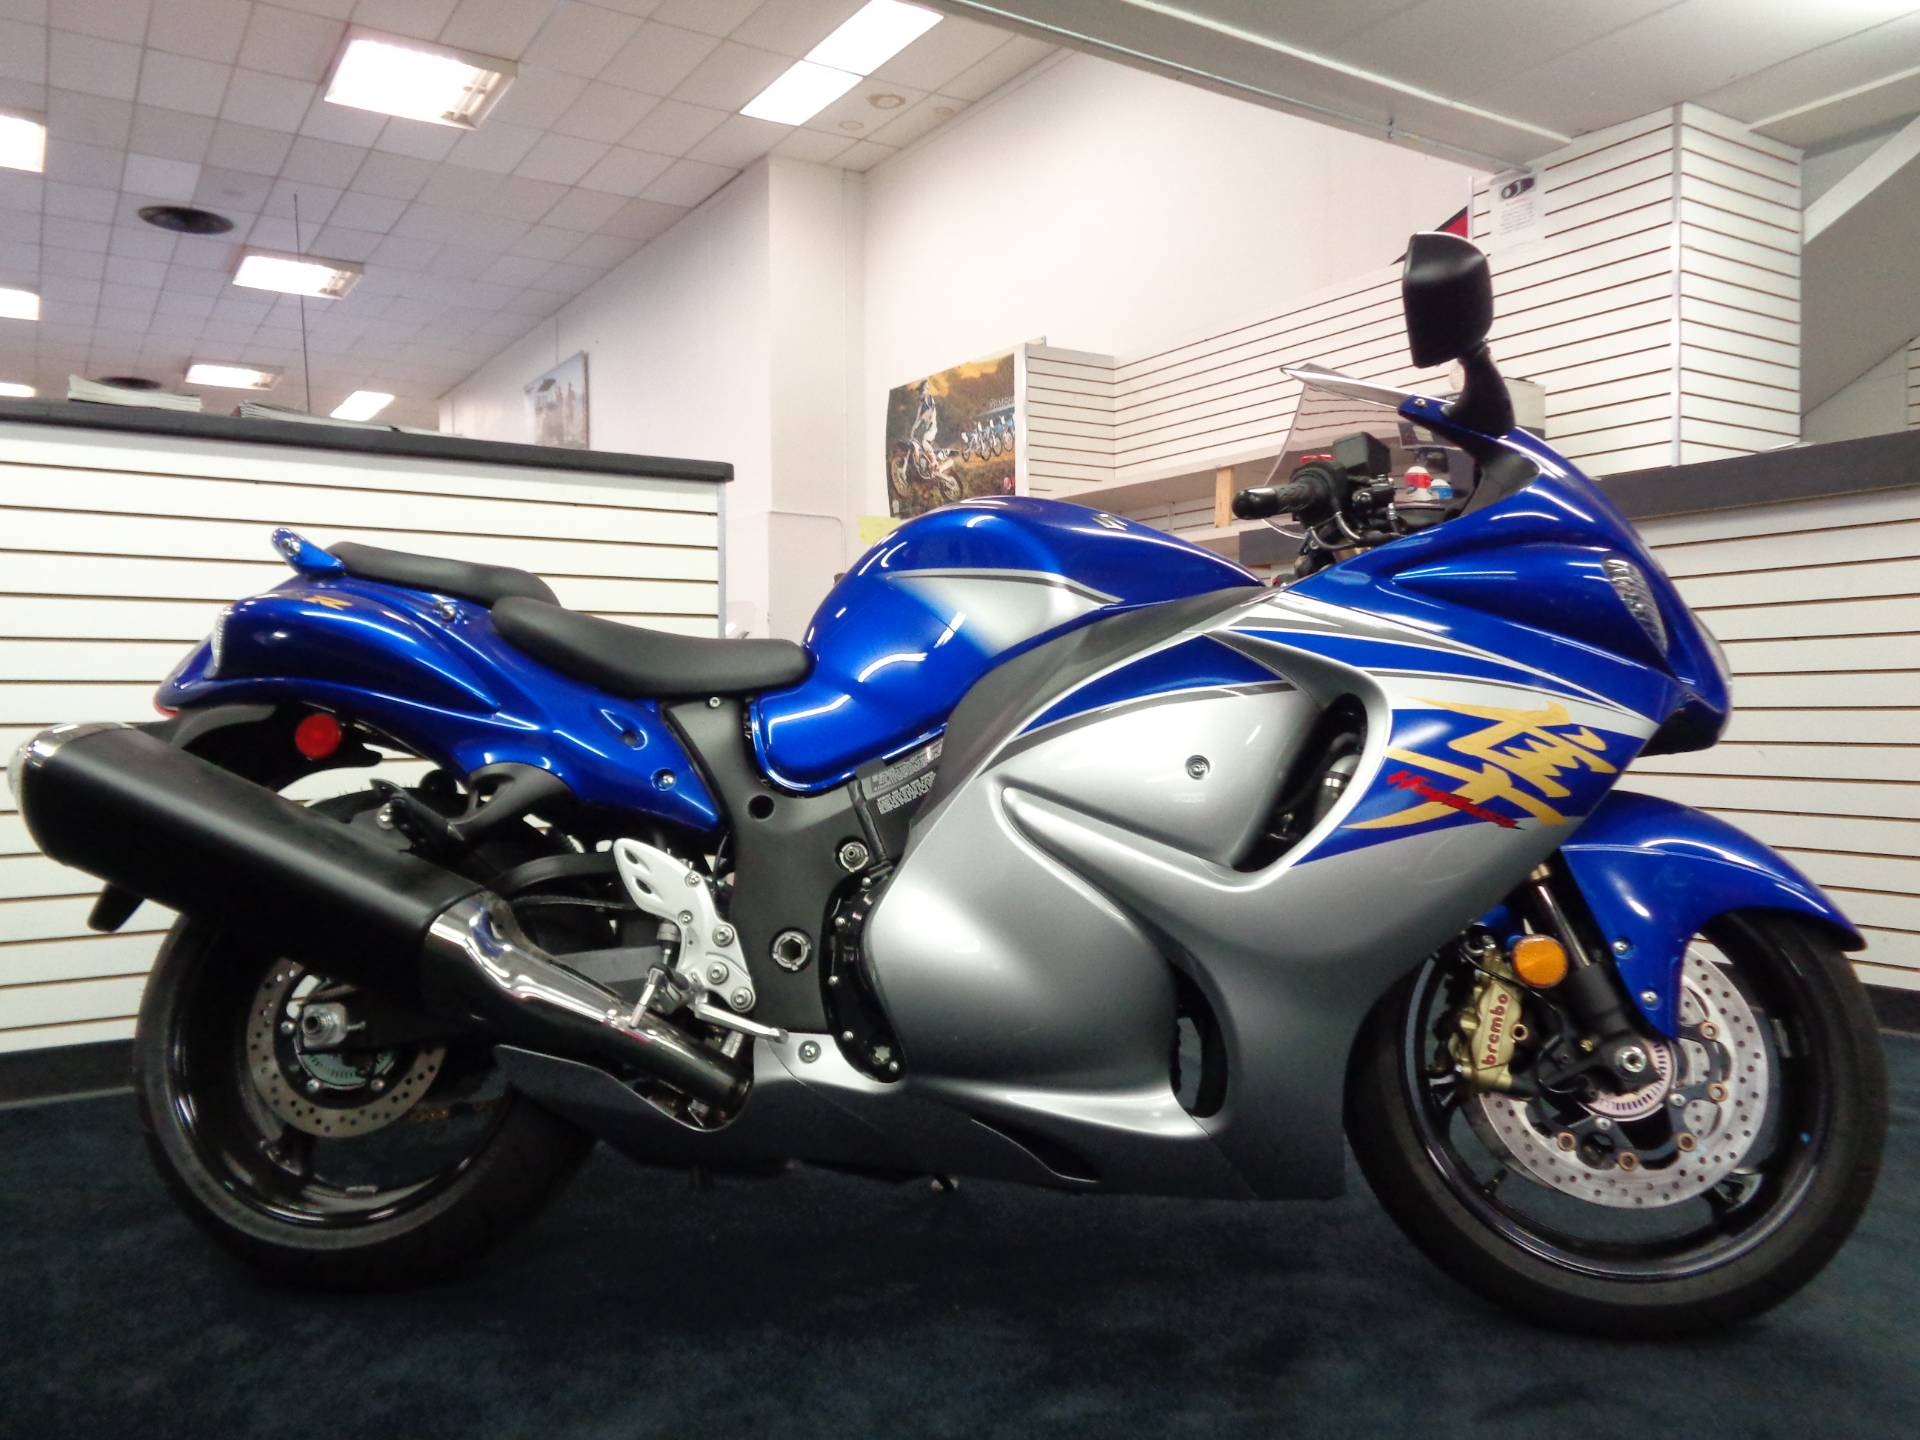 2015 Suzuki Hayabusa for sale 6285